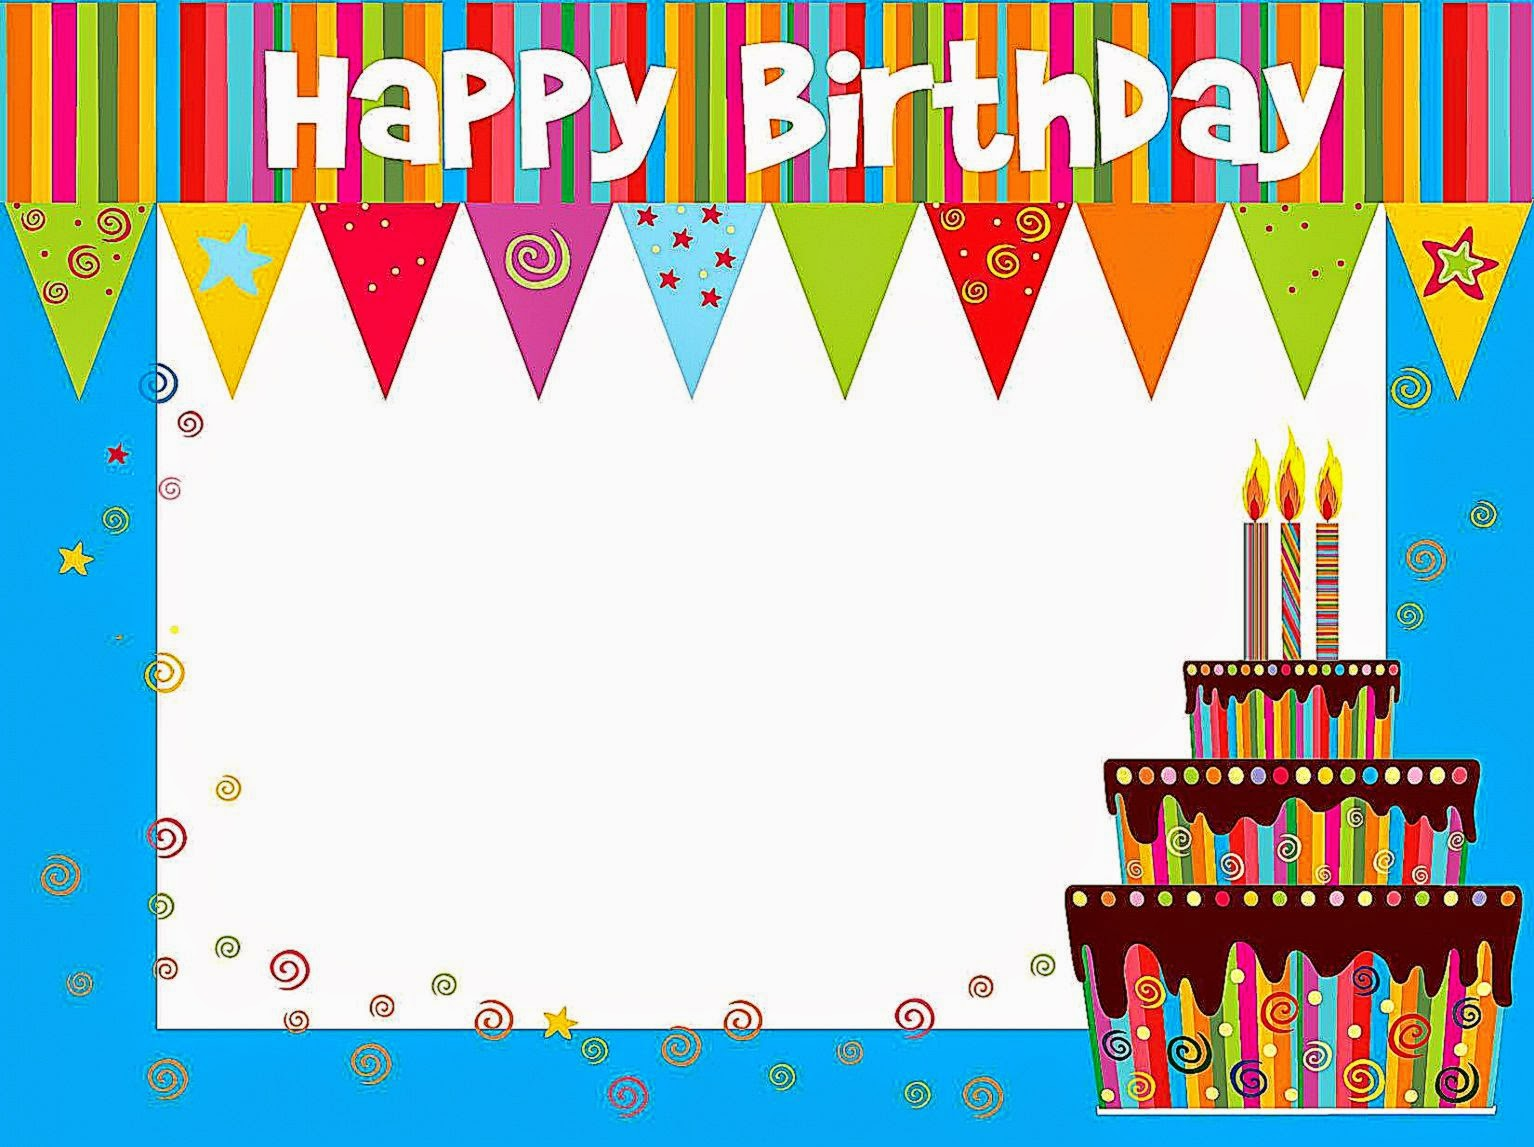 happy birthday card borders ; happy-birthday-cards-to-print-and-get-ideas-how-to-make-gorgeous-Birthday-invitation-appearance-17